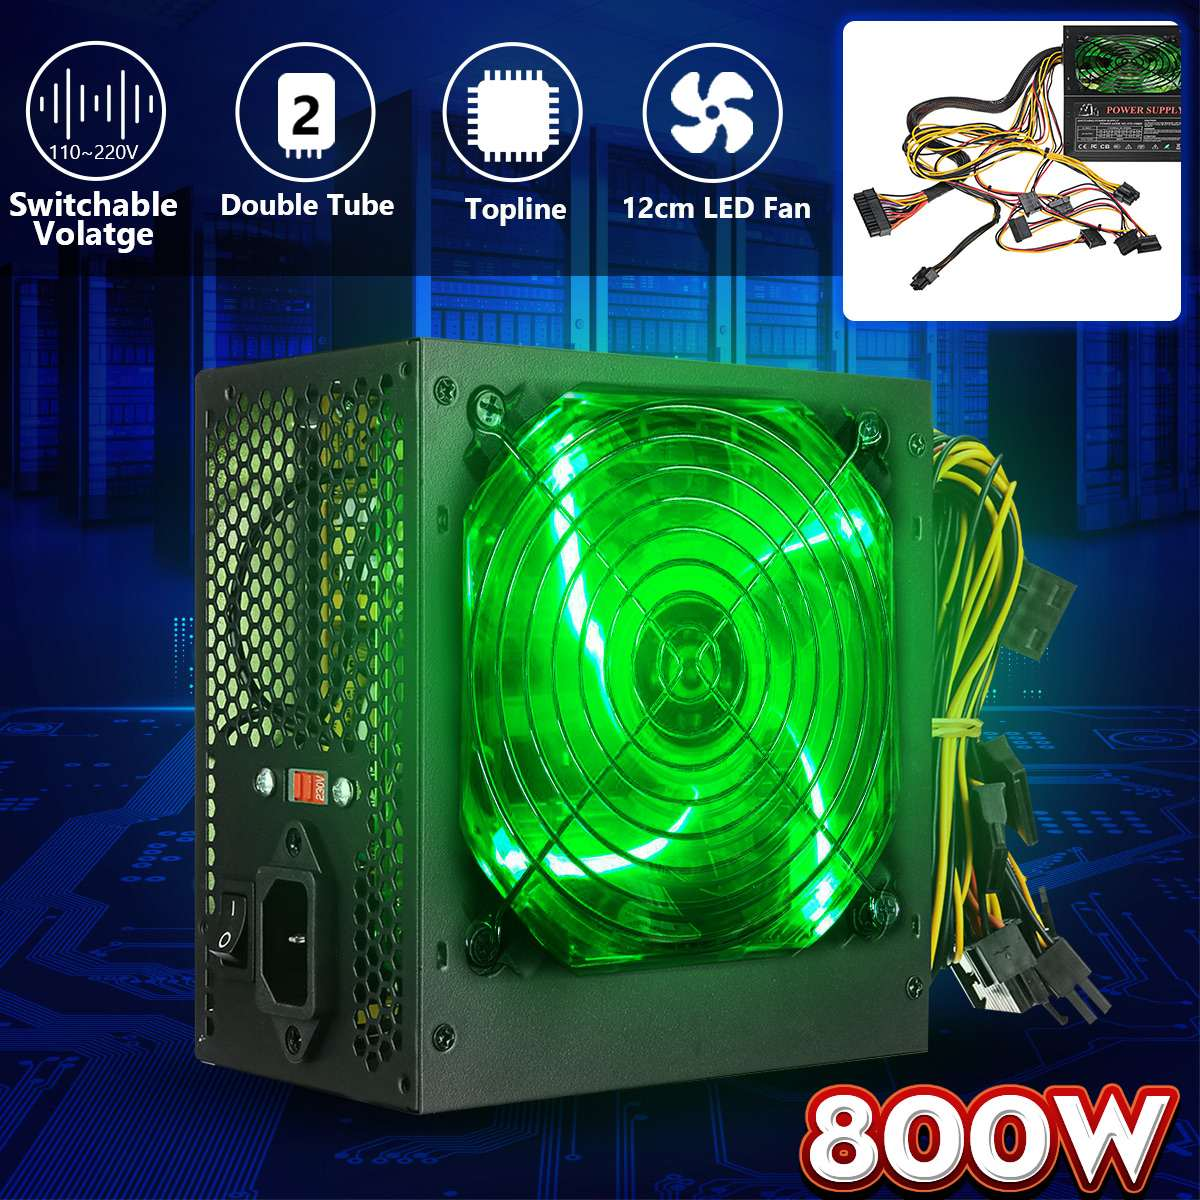 800W 110~220V PC Power Supply 12cm LED Silent Fan With Intelligent Temperature Control Intel AMD ATX 12V For Desktop Computer